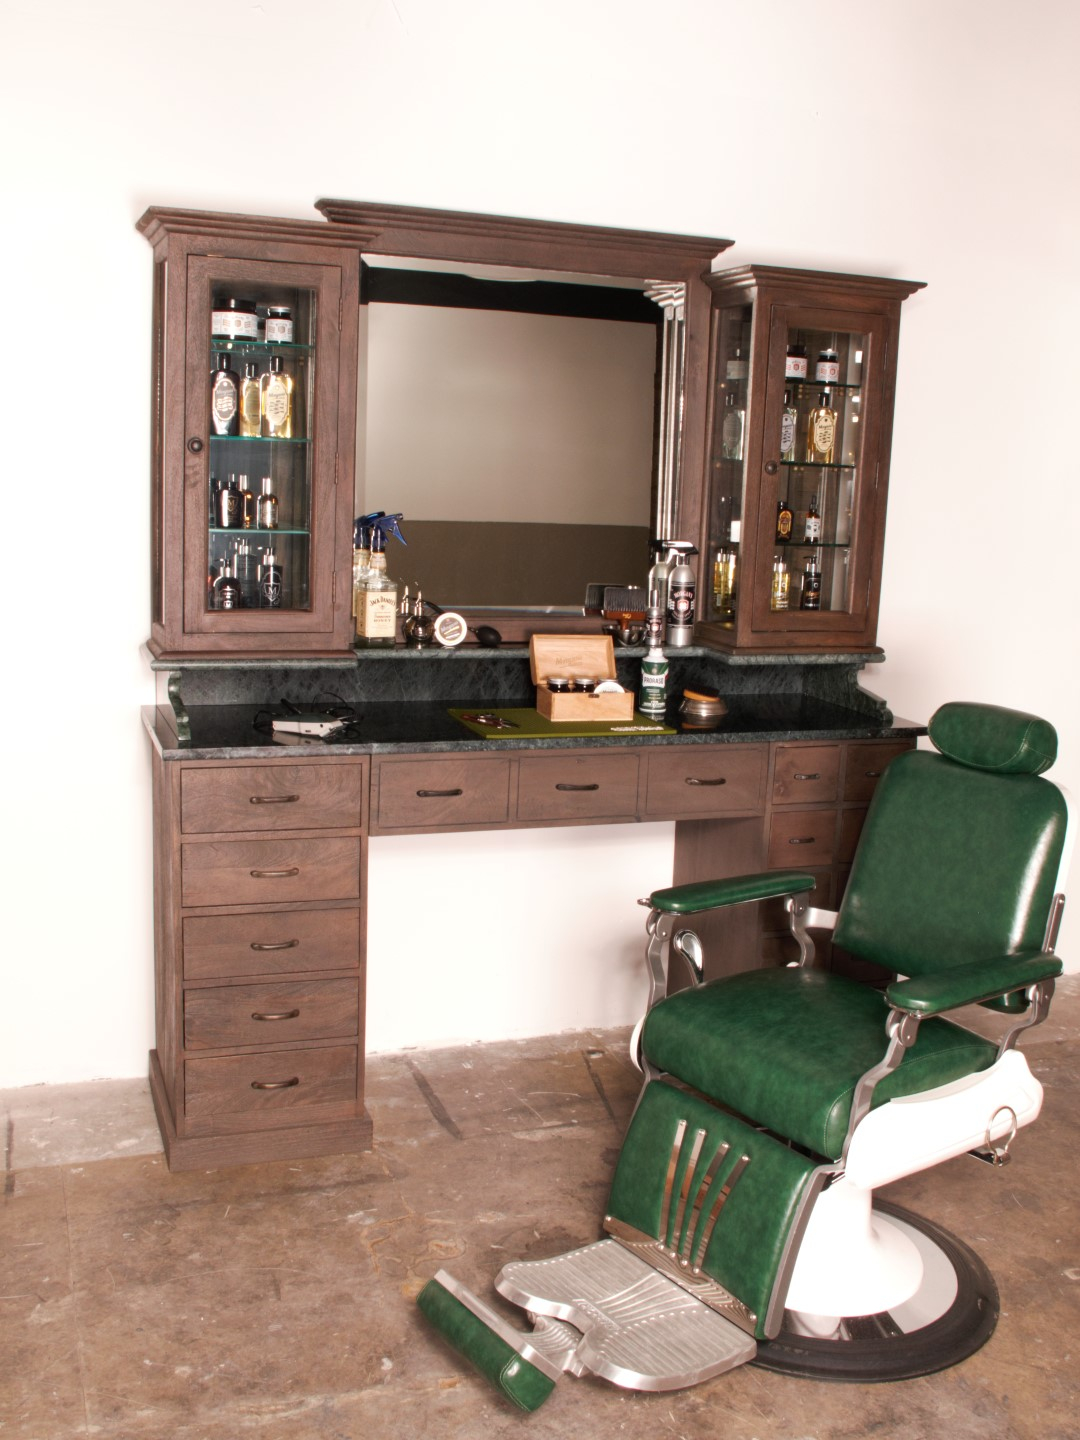 Barberstation | Workstation | Vintage barberunit | US delivery | Best delivery | Barberfurniture